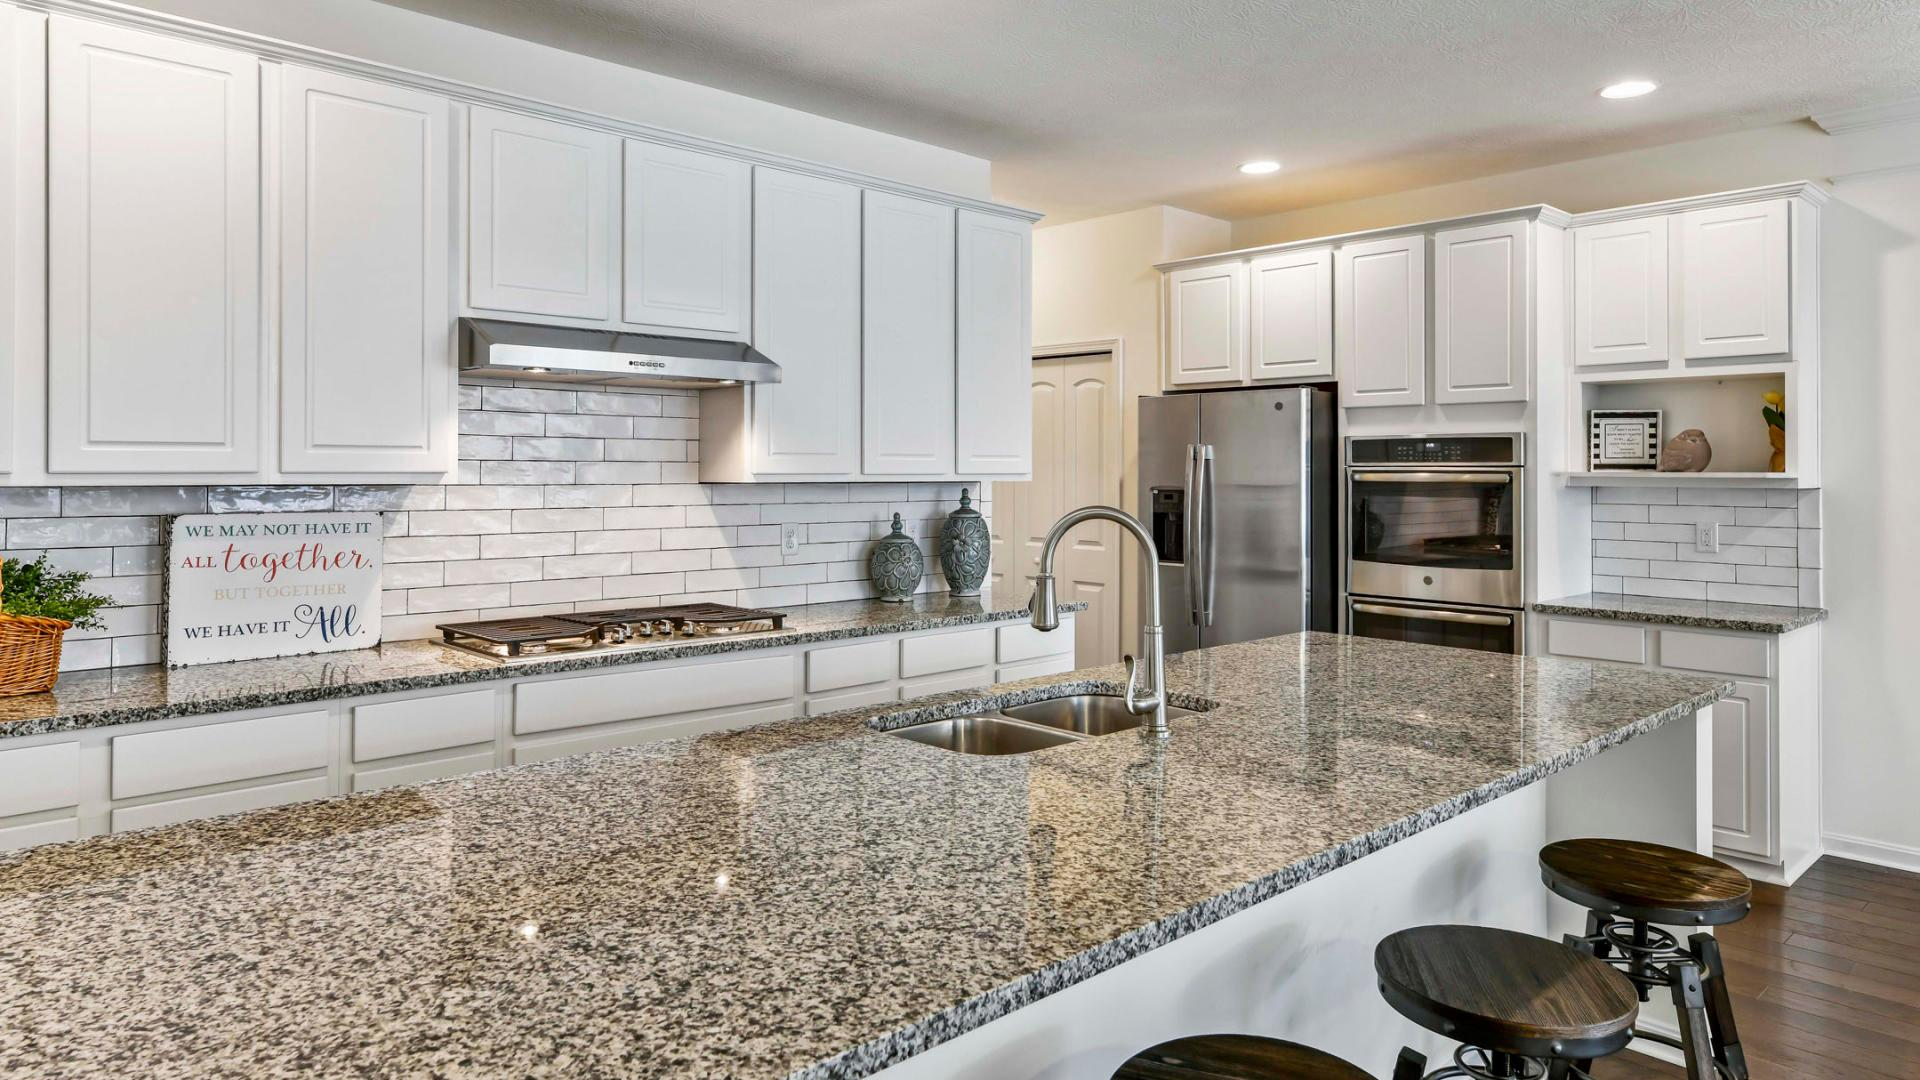 Kitchen featured in the Wilmington By Maronda Homes in Cincinnati, OH